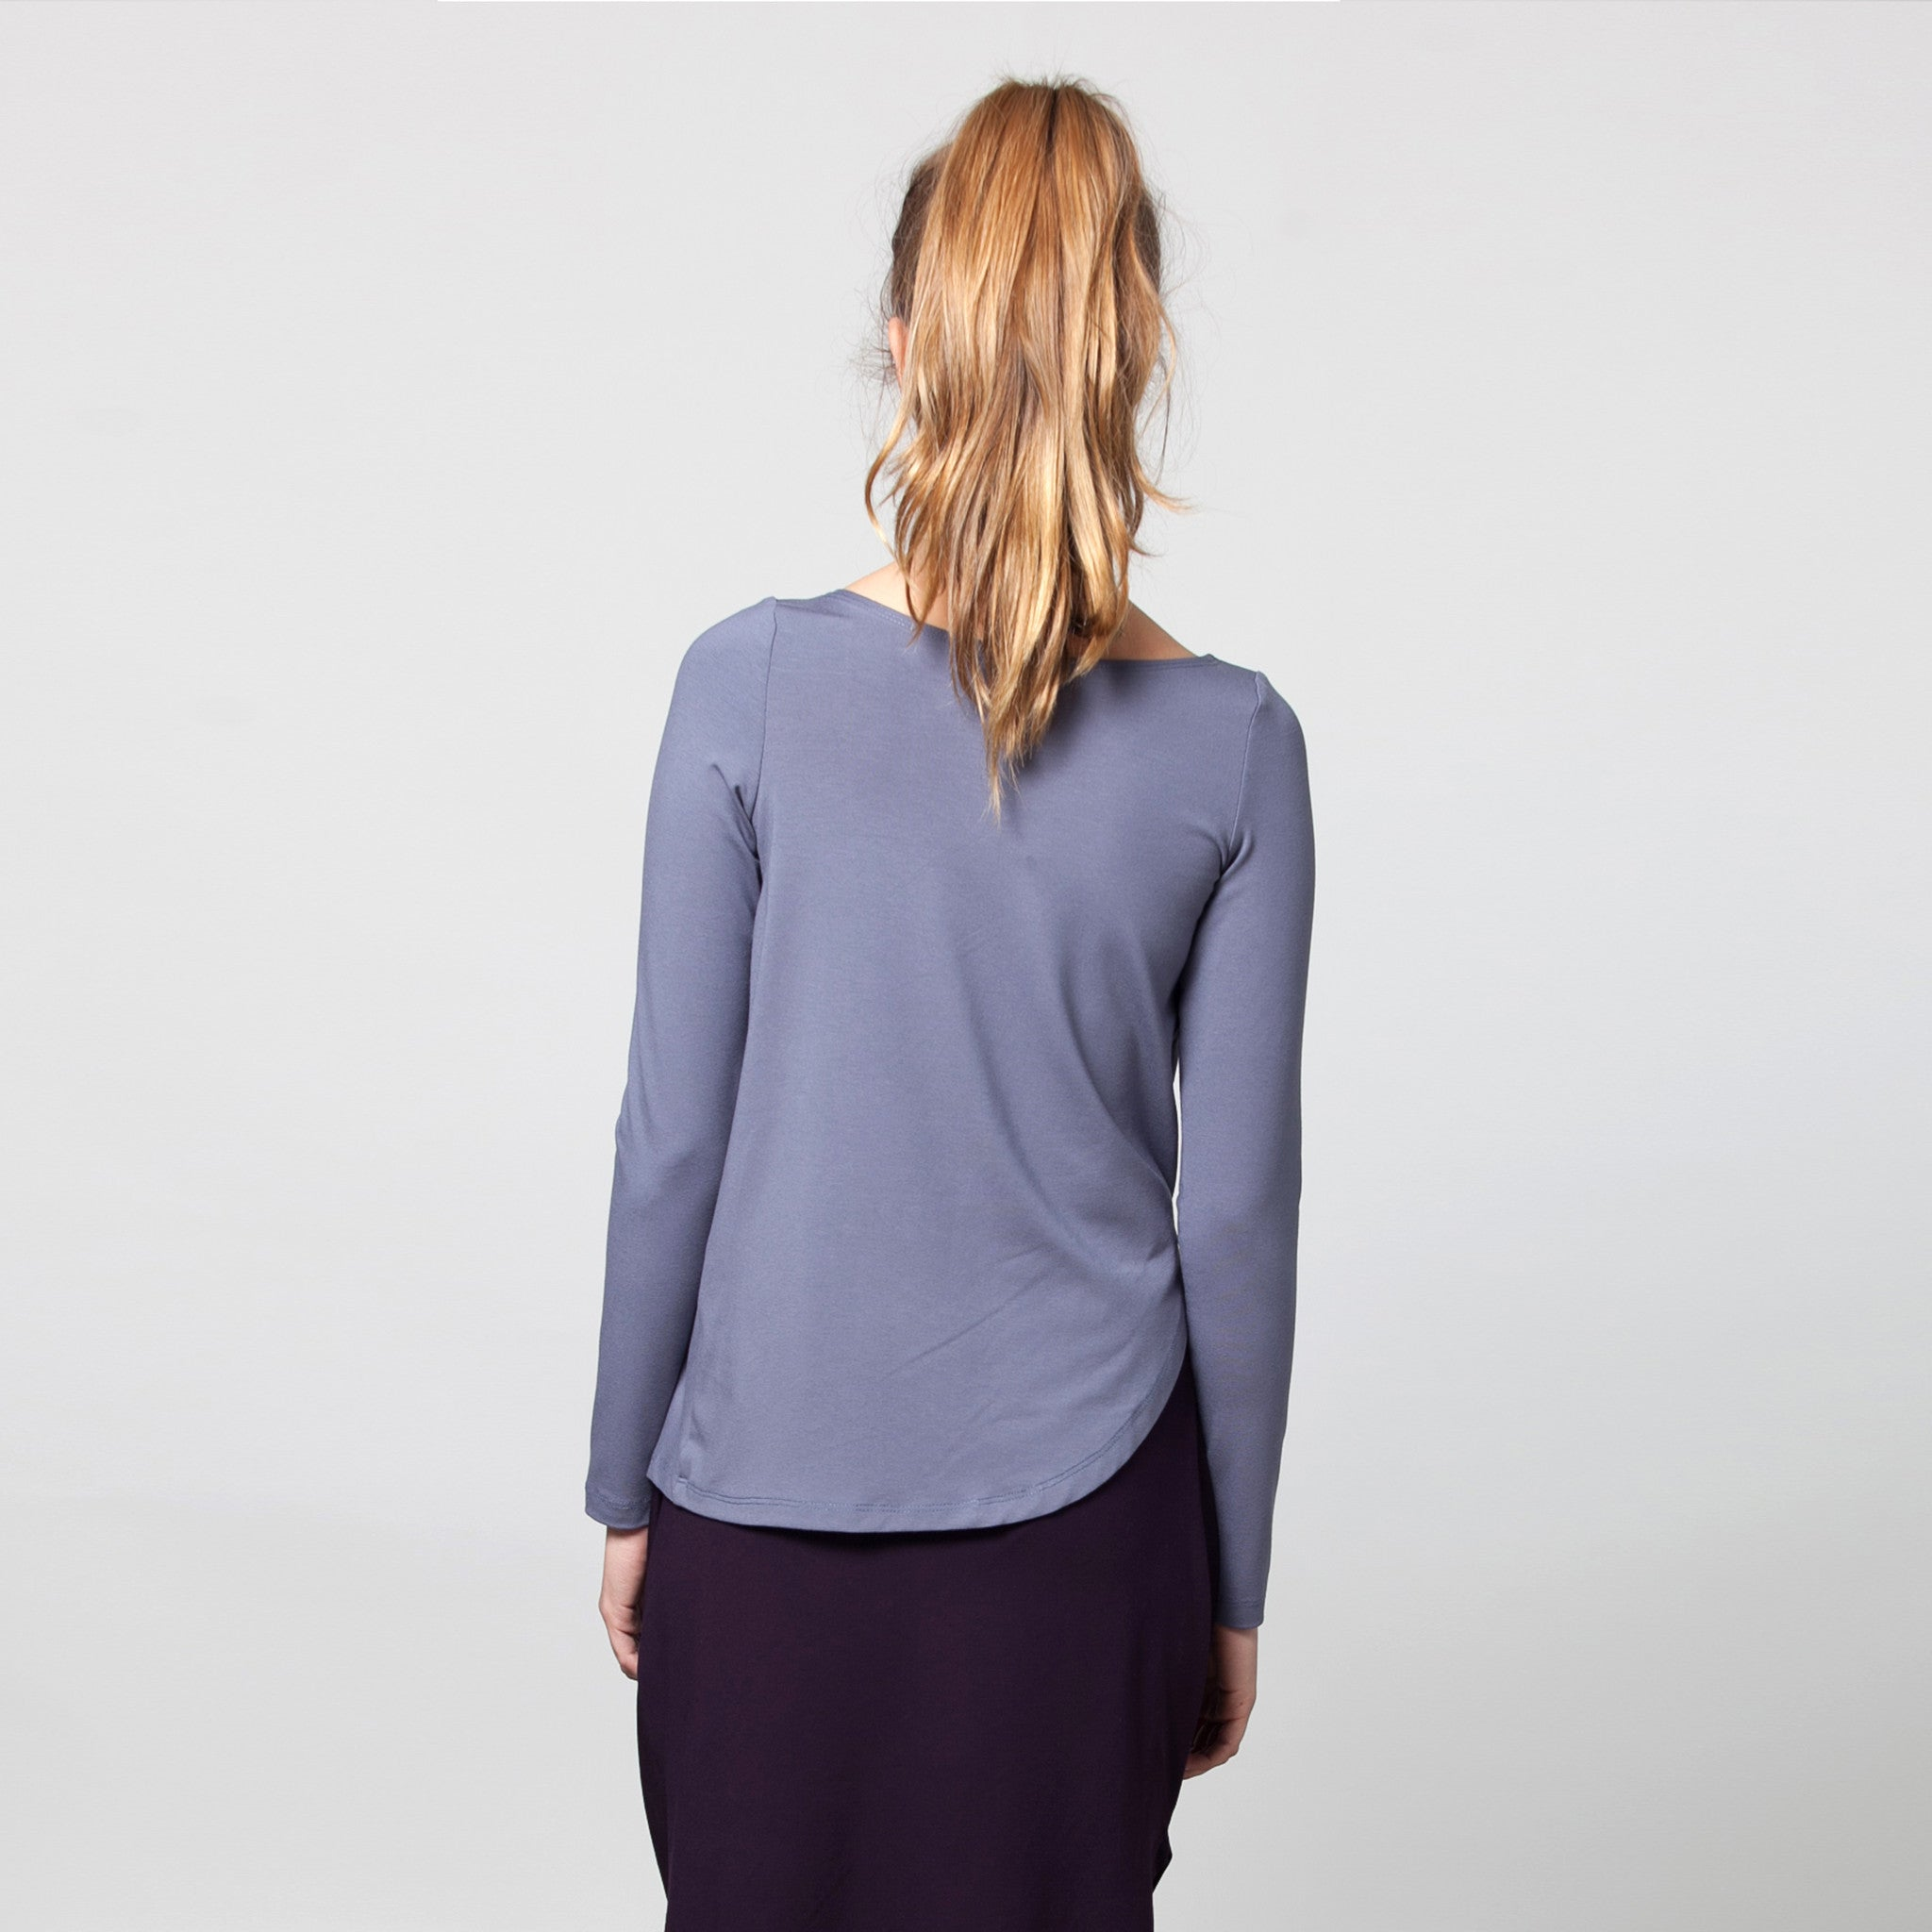 Sample sale- Long sleeve draped jersey top size S color light stone grey - DuendeFashion  - 5